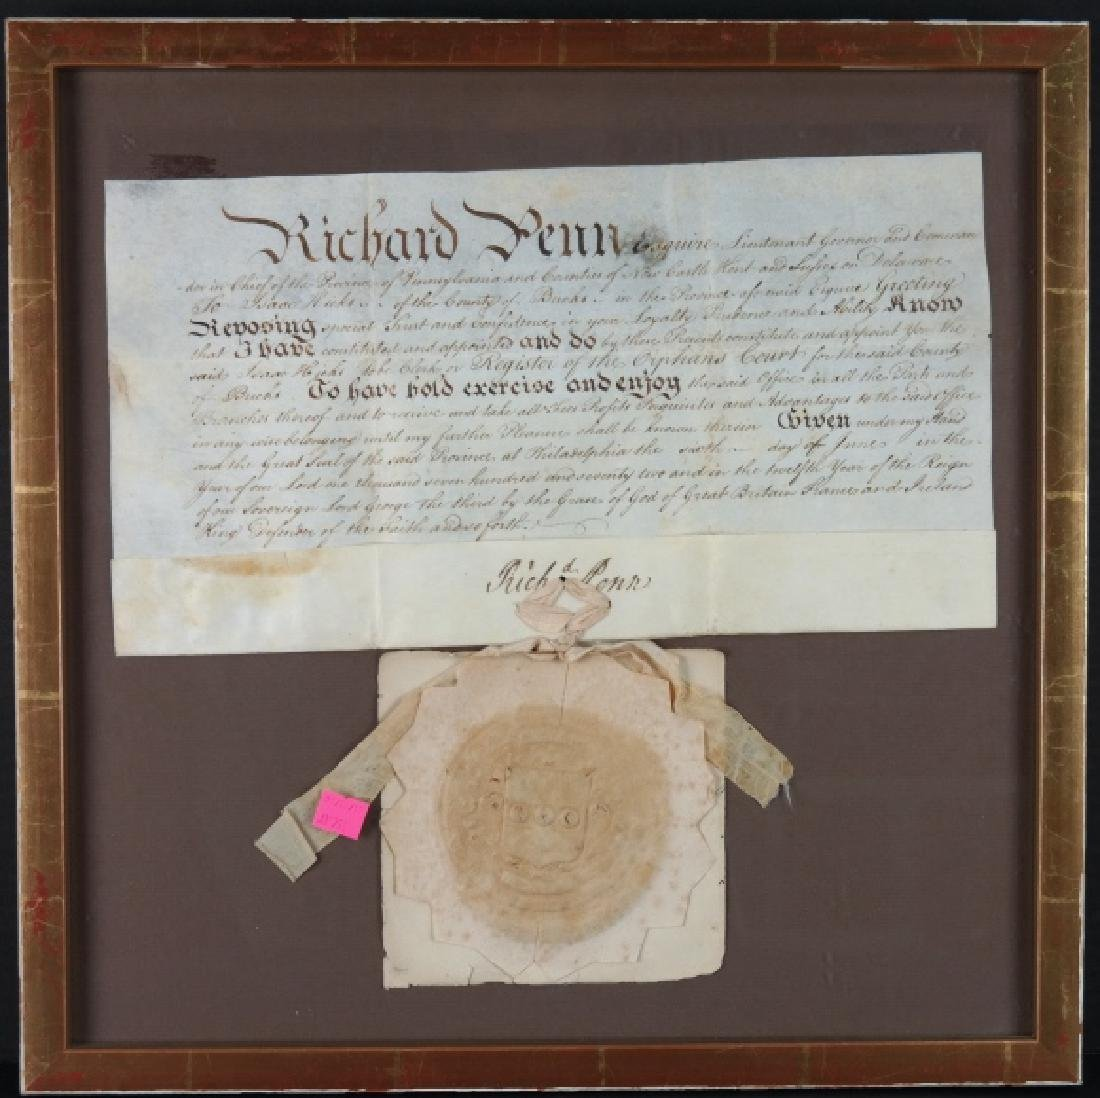 Richard Penn. Signed commission. 1772. Vellum.